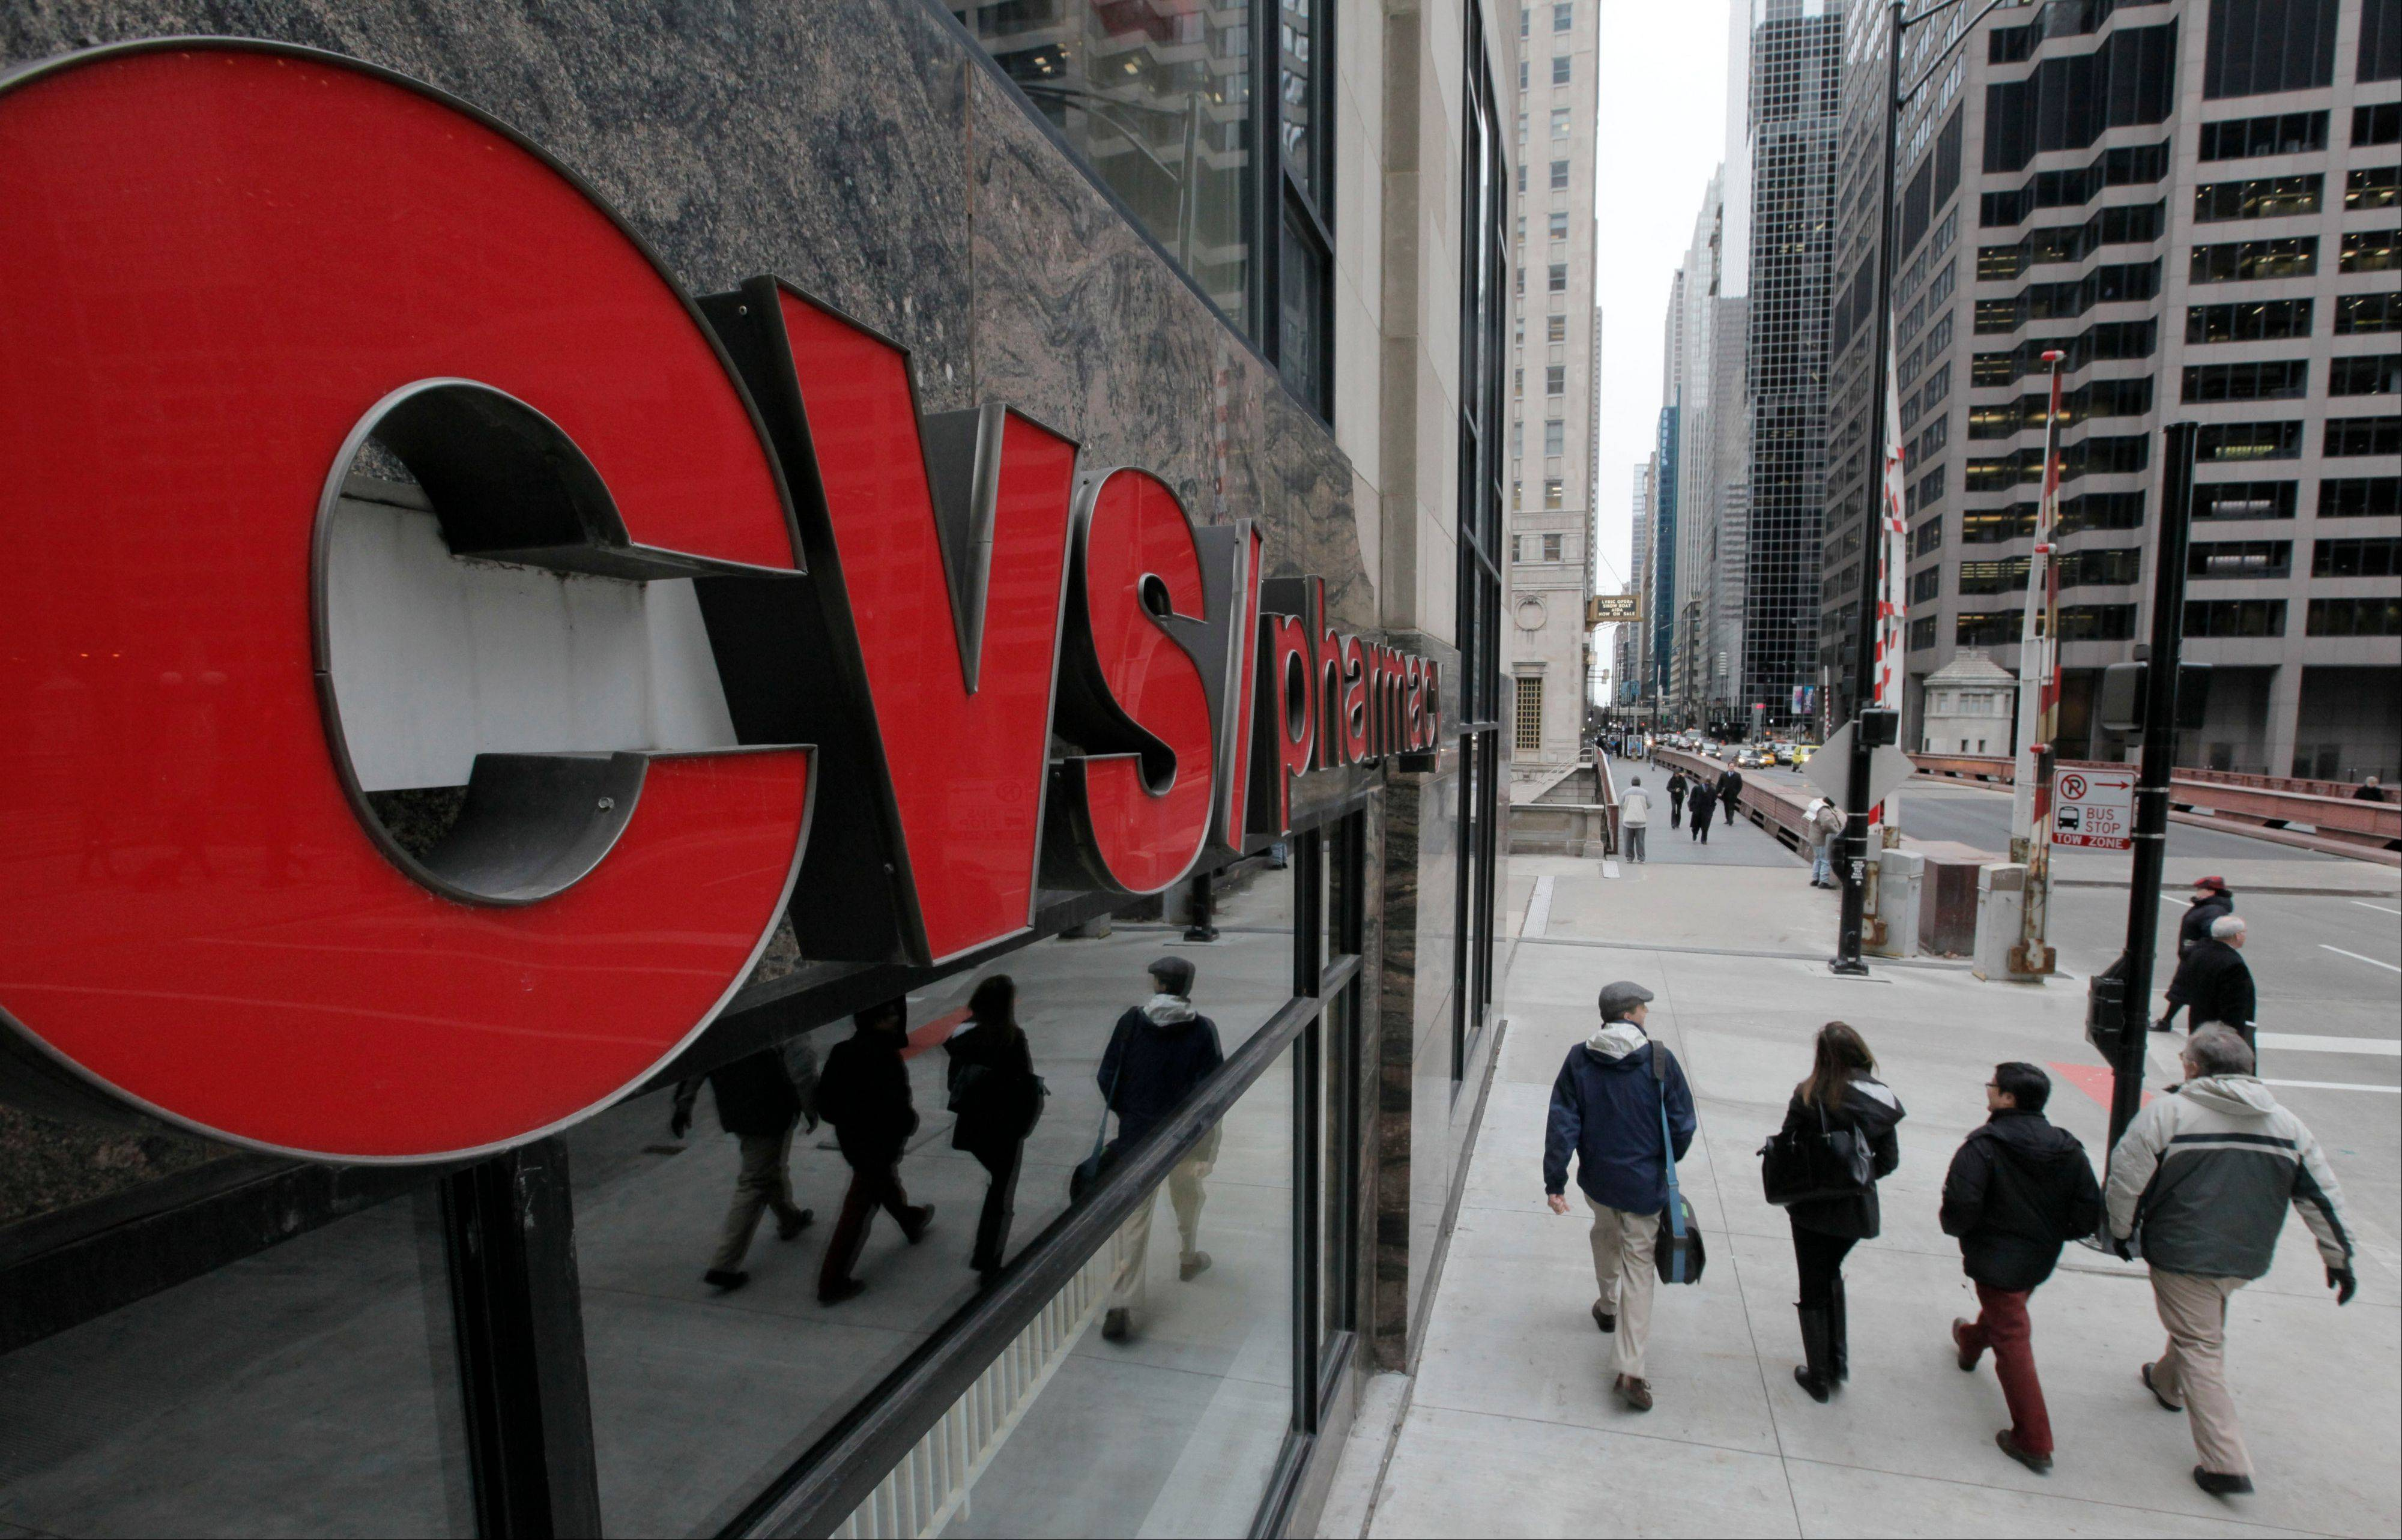 CVS Caremark says its second-quarter earnings climbed 16 percent, as the company booked revenue gains from both its drugstore and pharmacy benefits management sides.